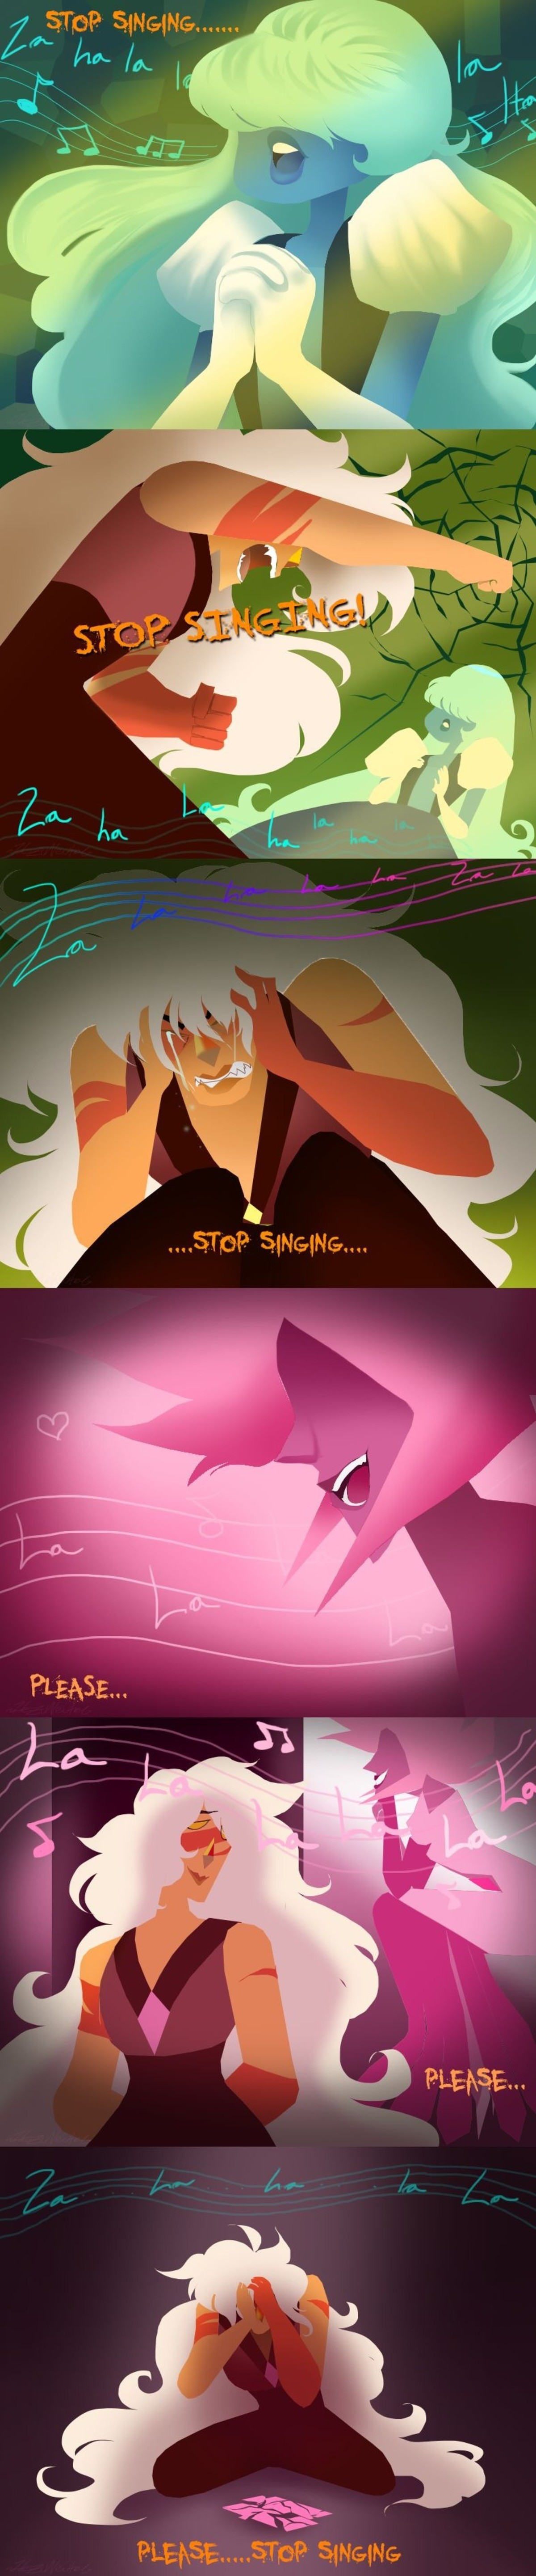 Stop singing. .. Weired we never see pink sing. Rose and Steven both love music and we know Pink likes to throw Balls.